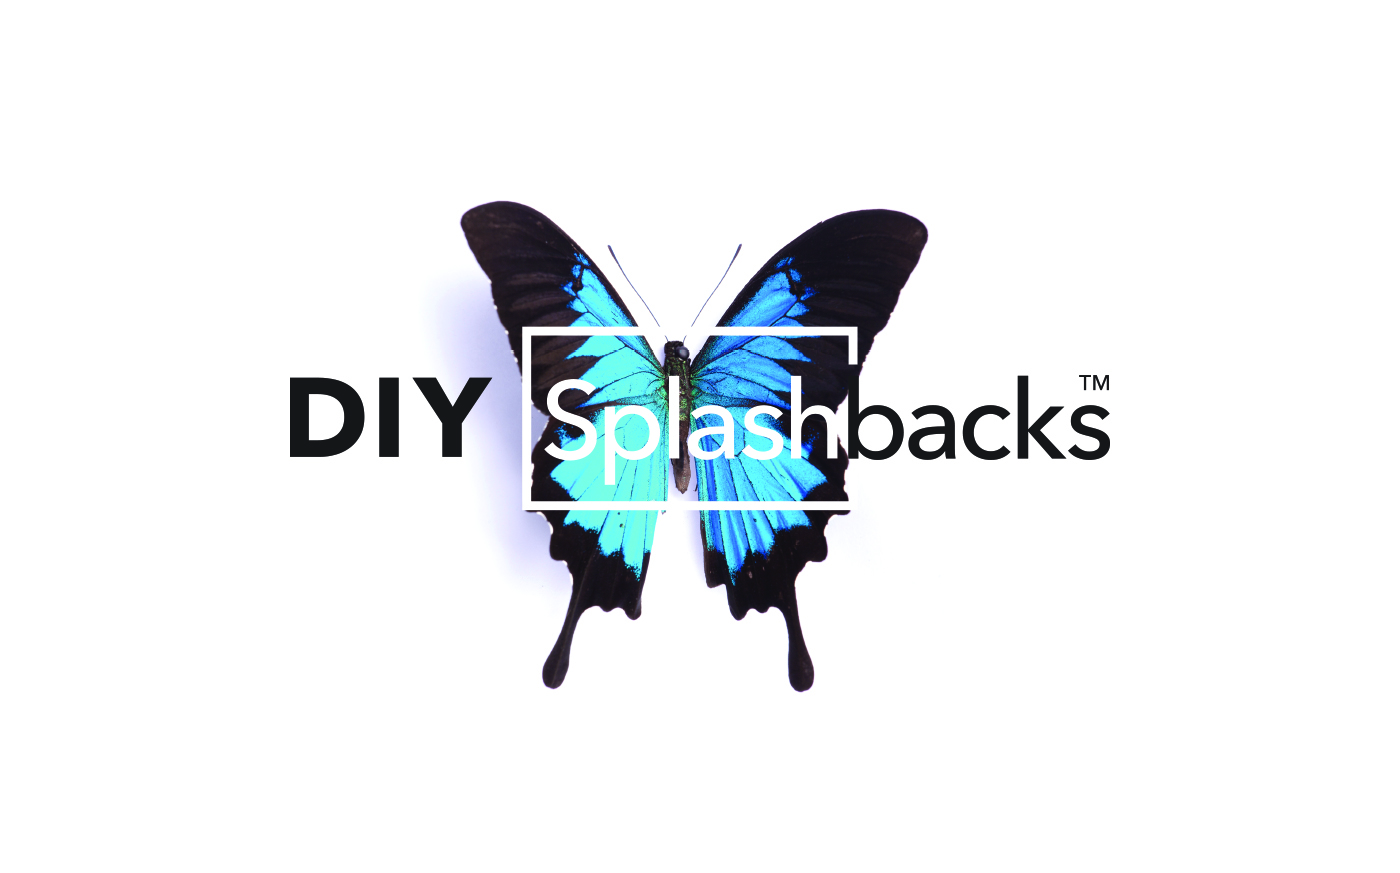 diy-splashbacks_thumb